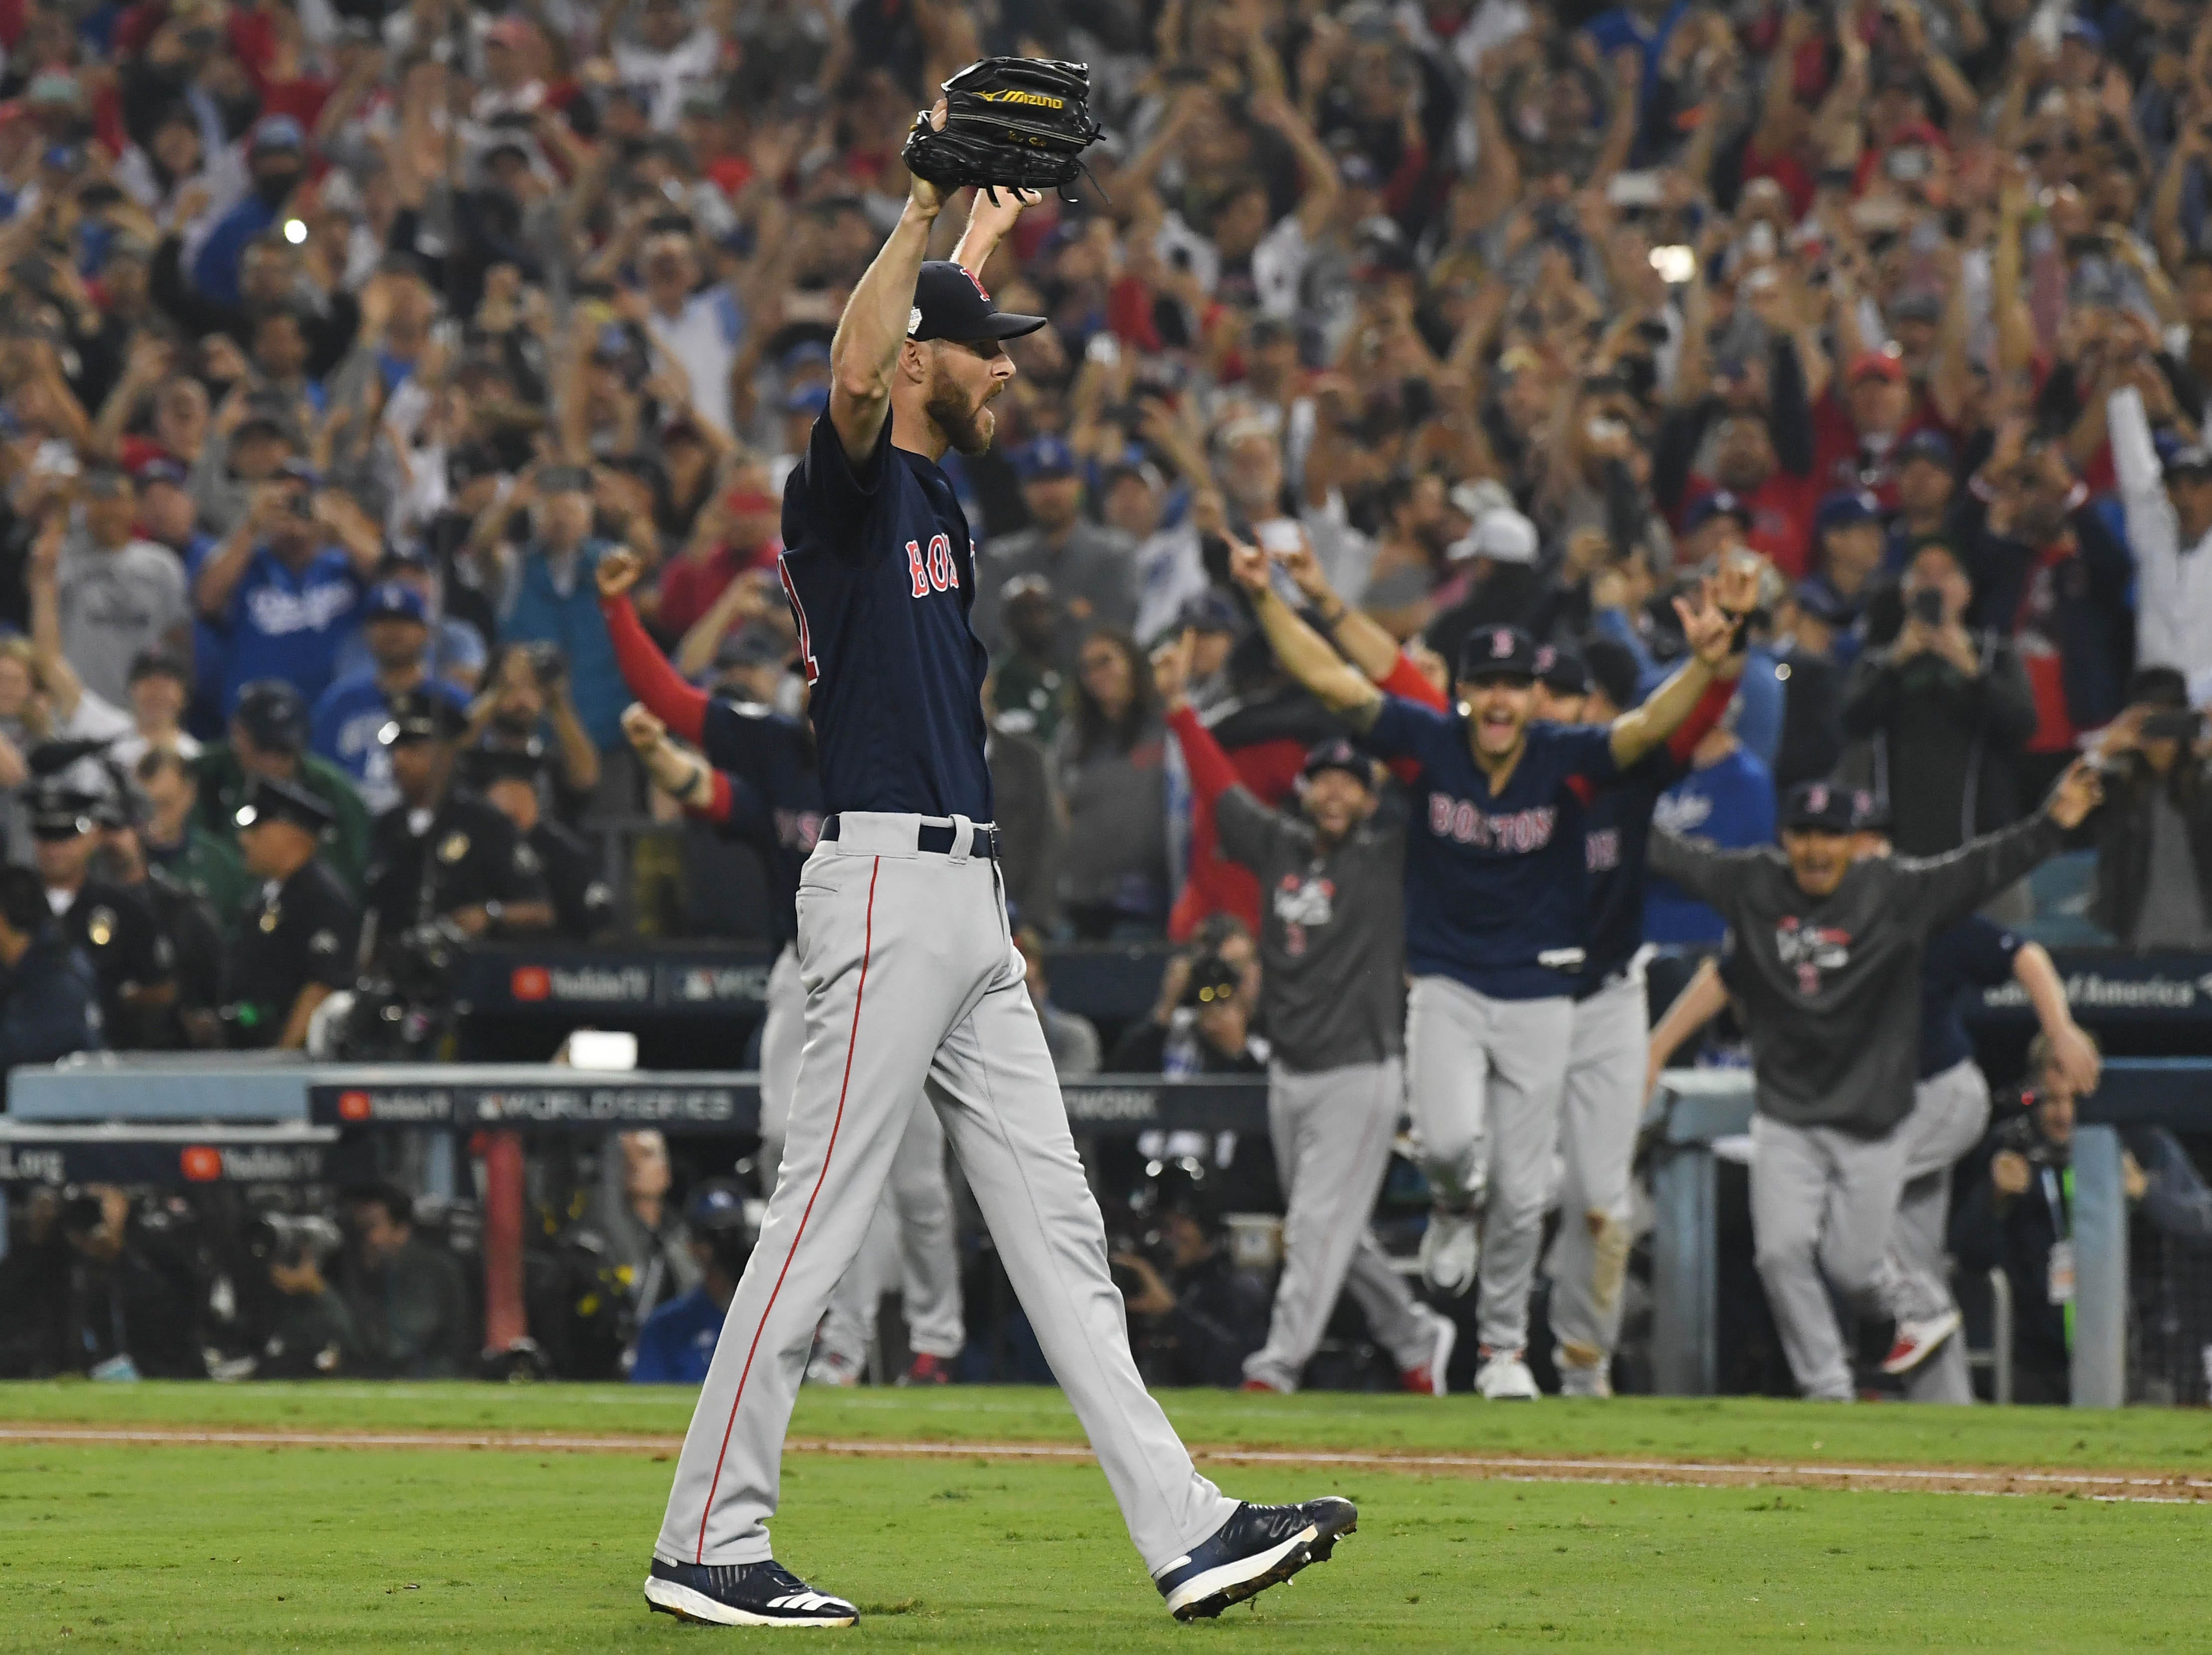 Game 5 at Dodger Stadium: Chris Sale celebrates after recording the final out.